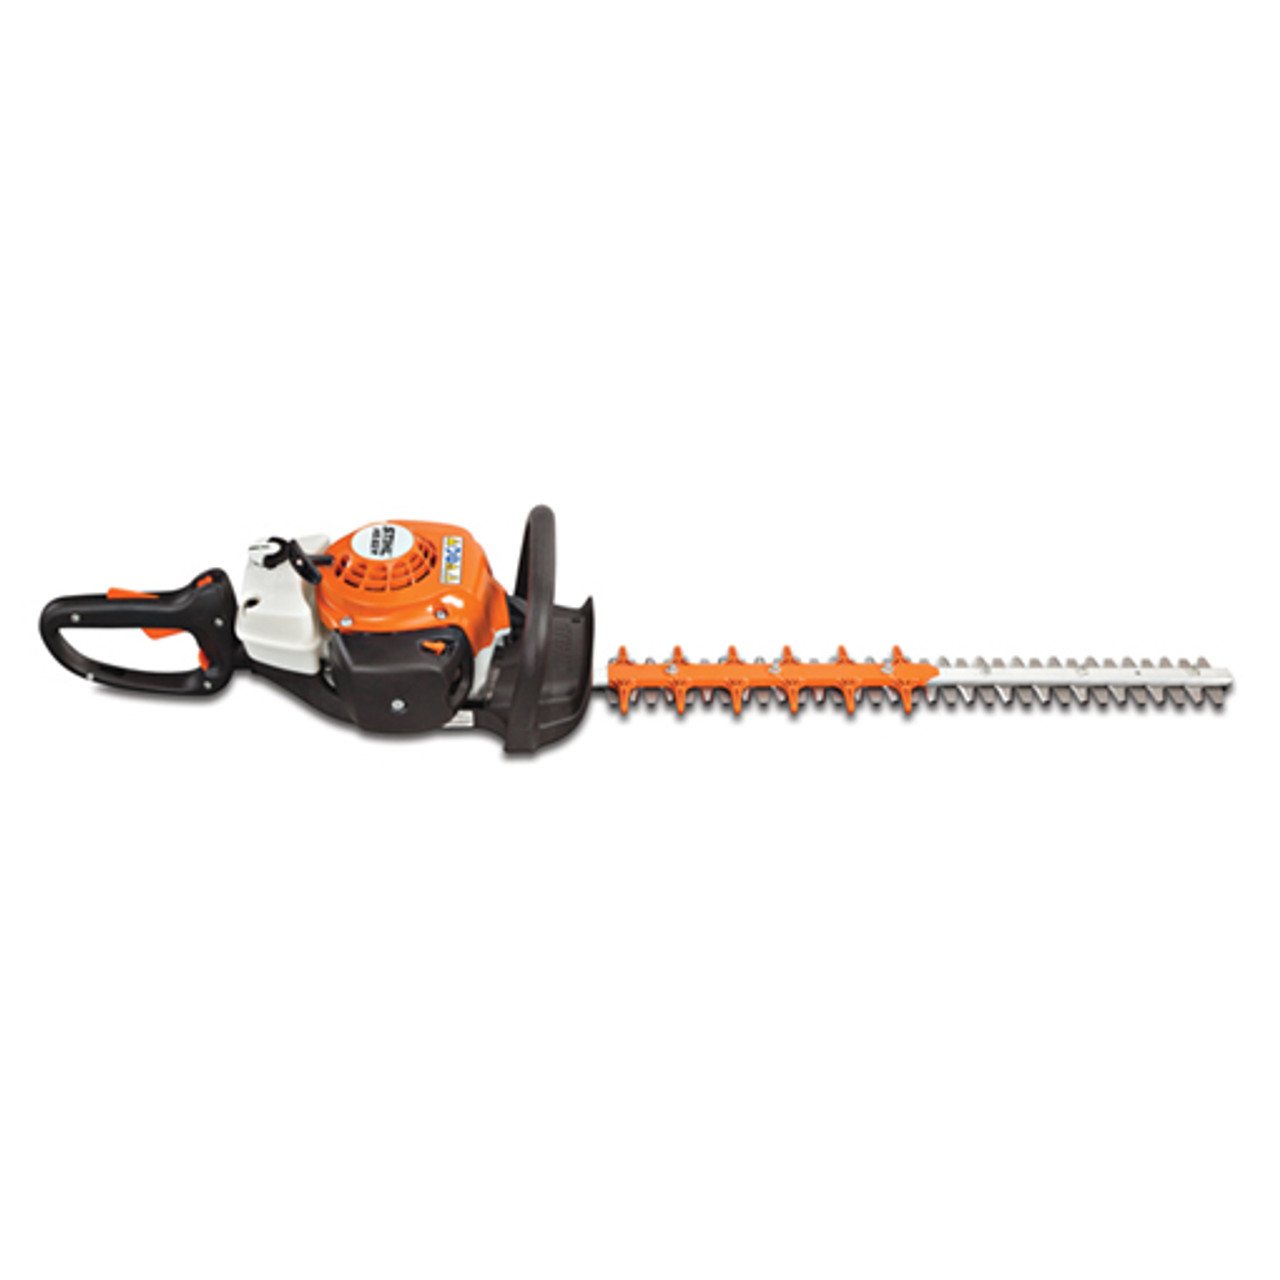 """STIHL HS 82 R 24 22.7cc Hedge Trimmer w/ 24"""" Double-Sided Blades Image"""